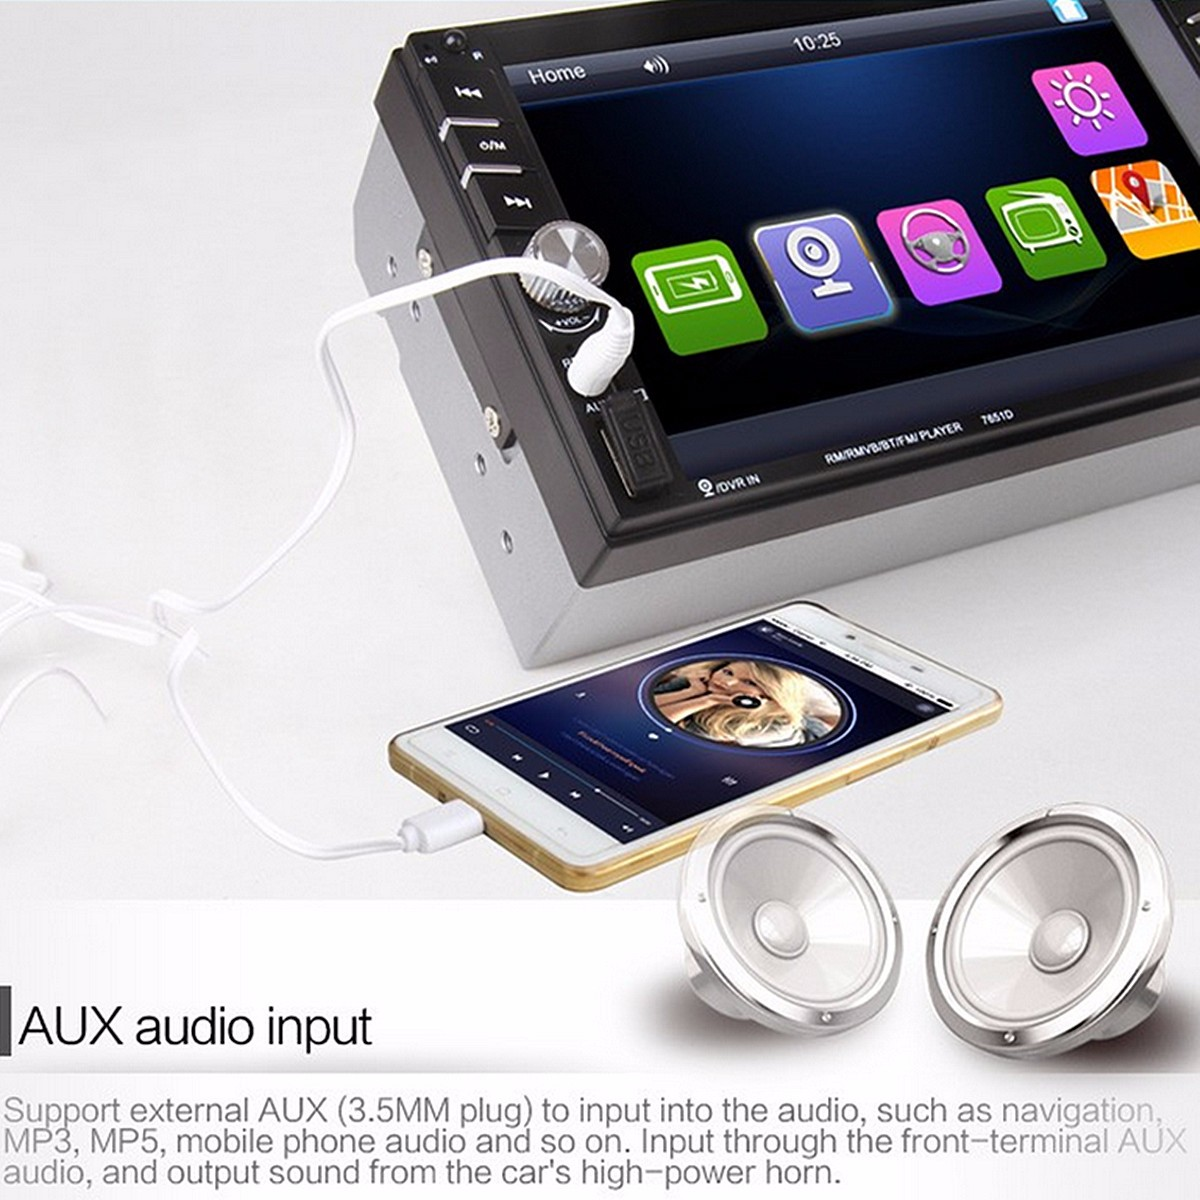 6.6 Inch TFT Touch Screen 2 DIN Car MP5 Player Stereo Radio With Rear Camera